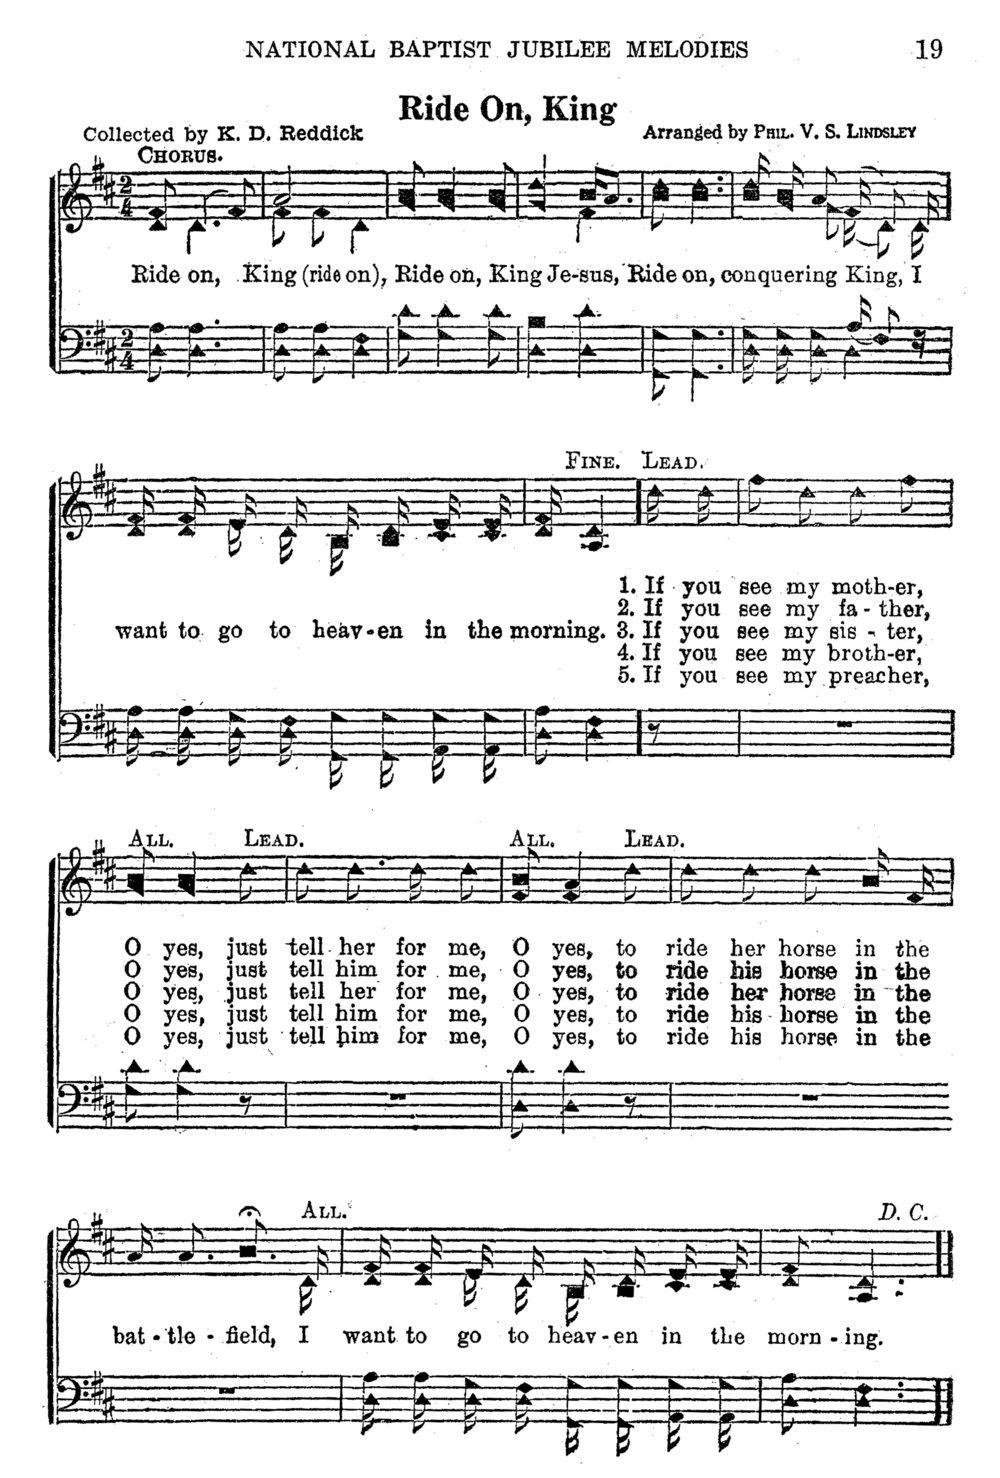 Fig. 3.   National Jubilee Melodies  (Nashville: National Baptist Publishing Board, 1916).